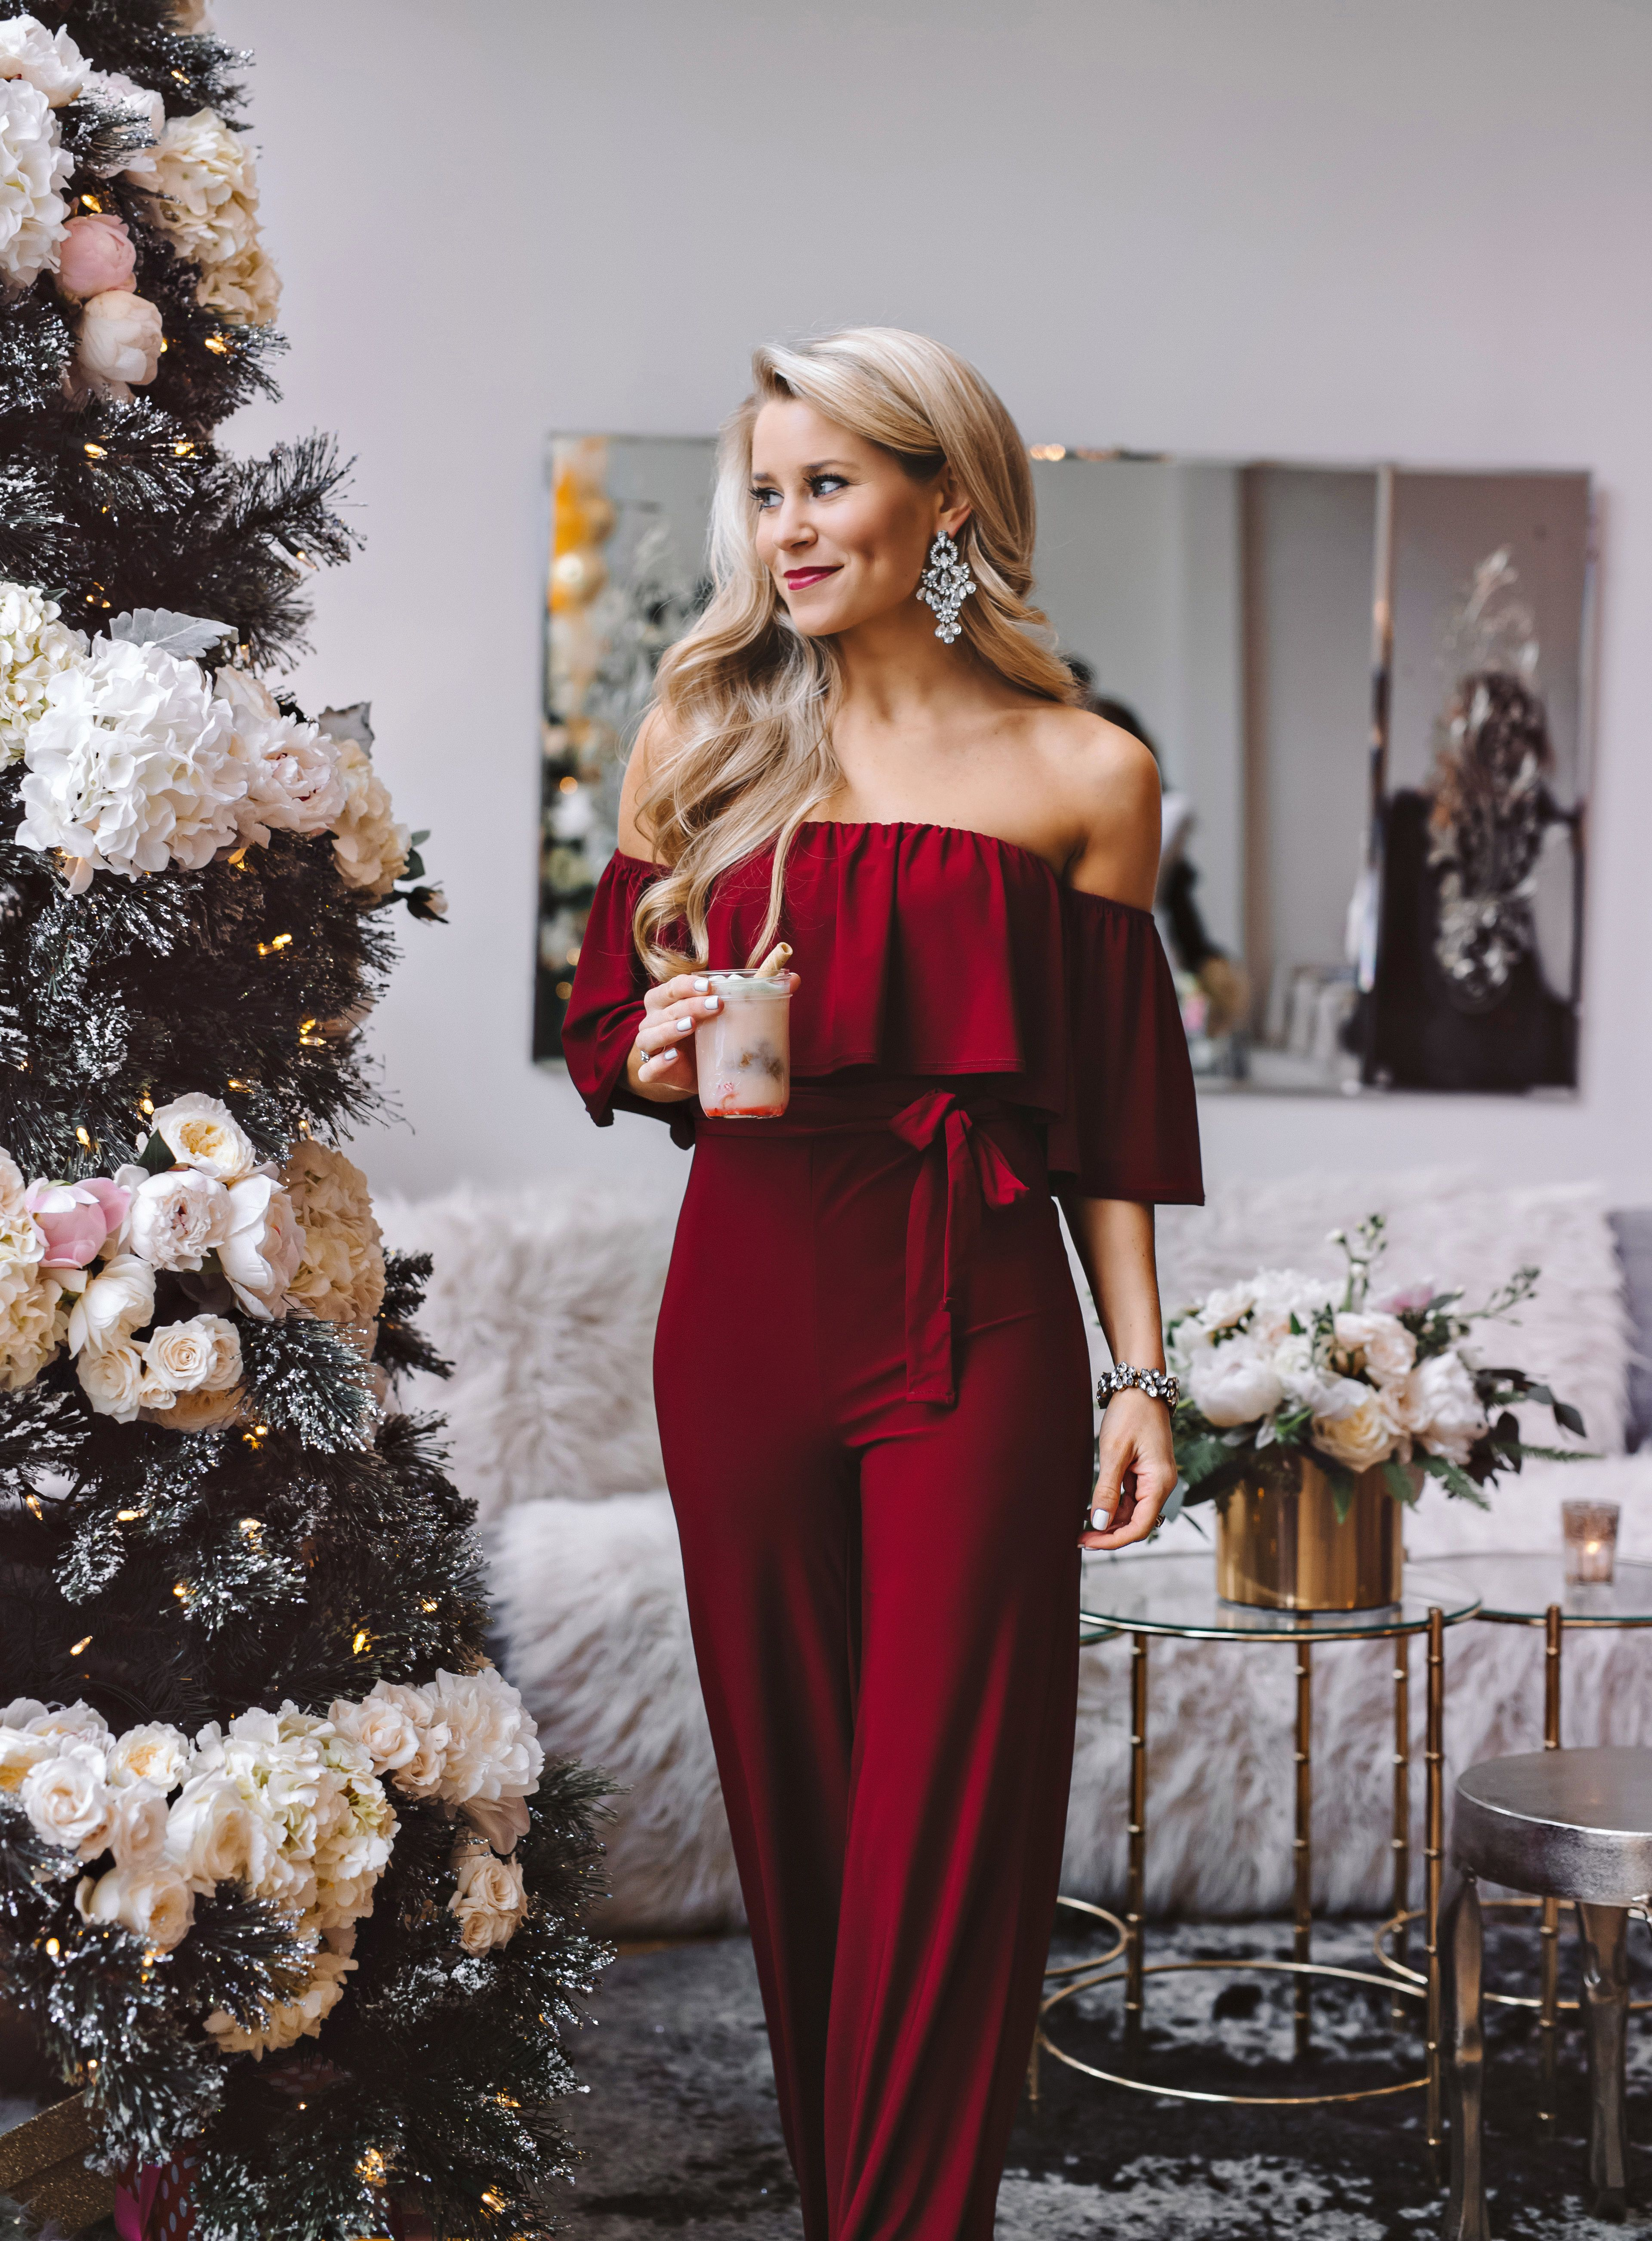 Holiday Party Decor + Outfit Ideas